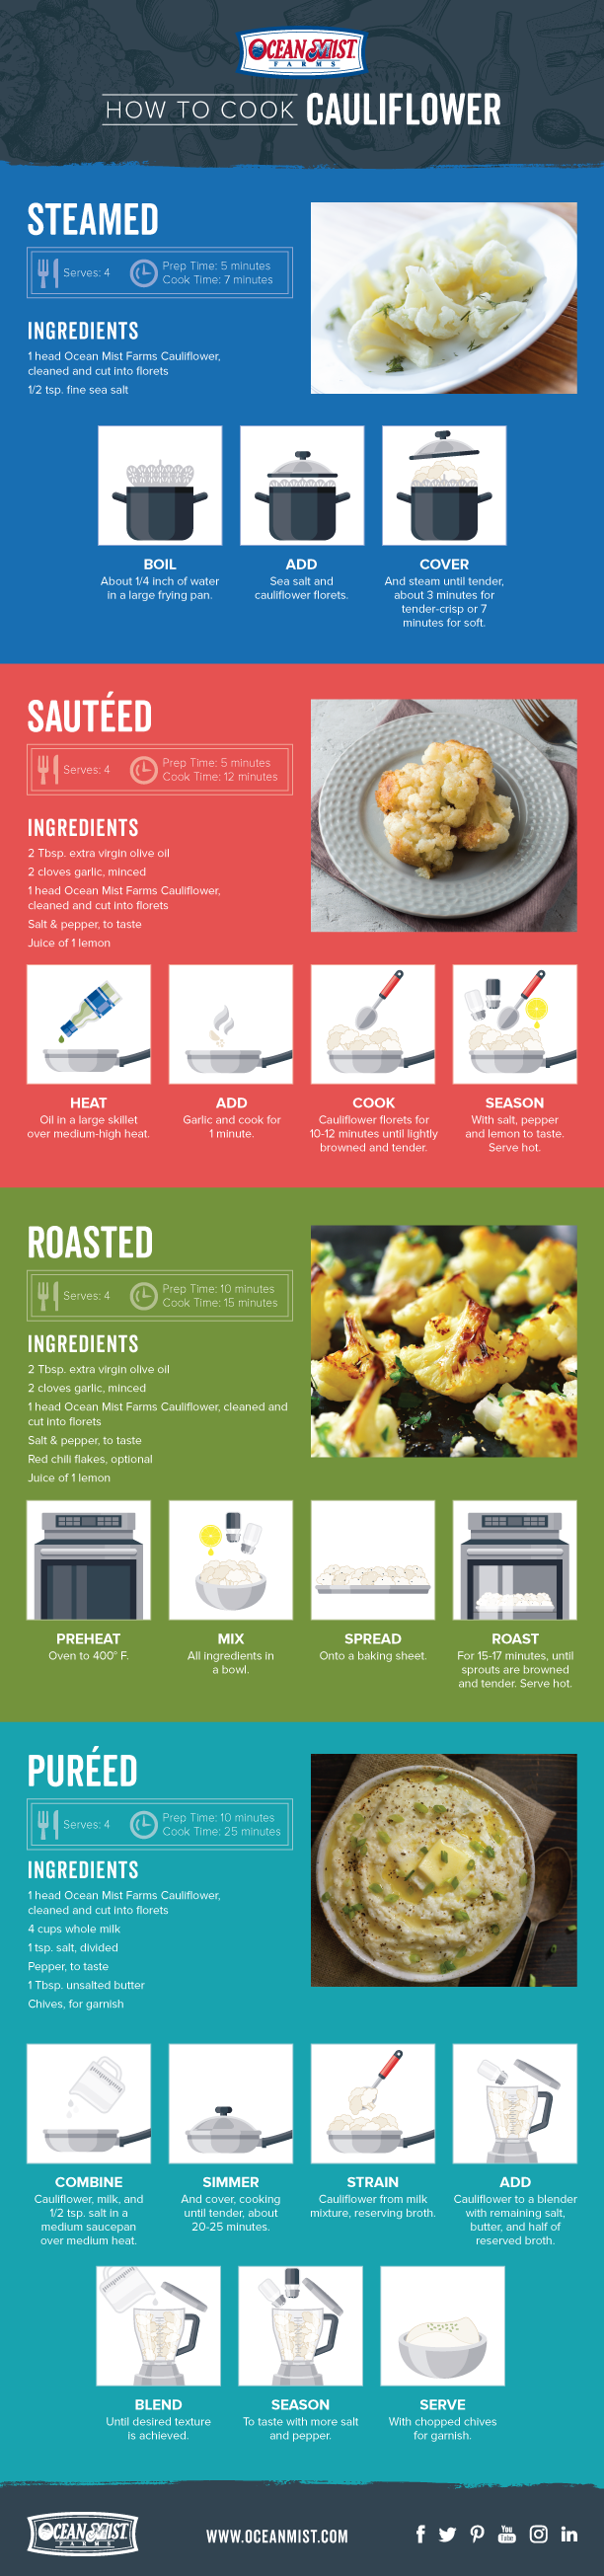 OM_How-to-Cook-Cauliflower_Infographic